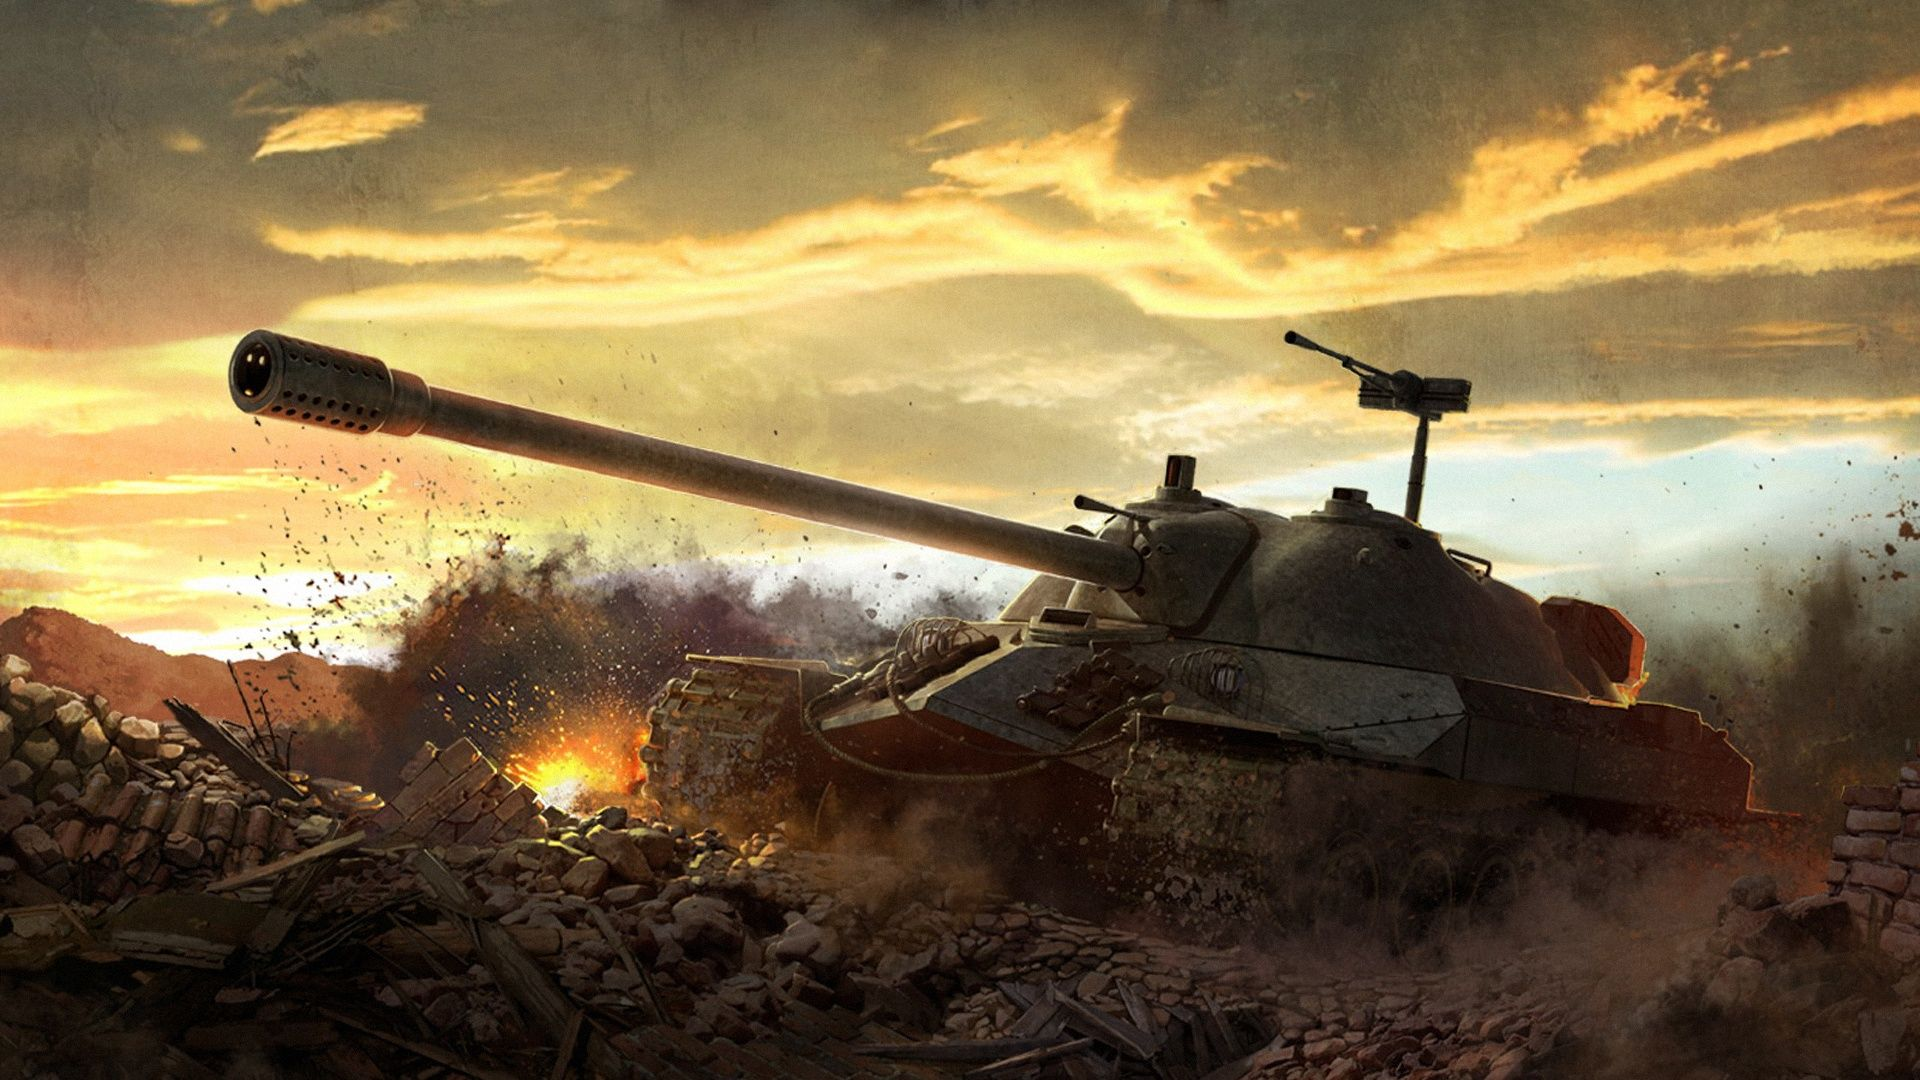 world of tanks wallpaper